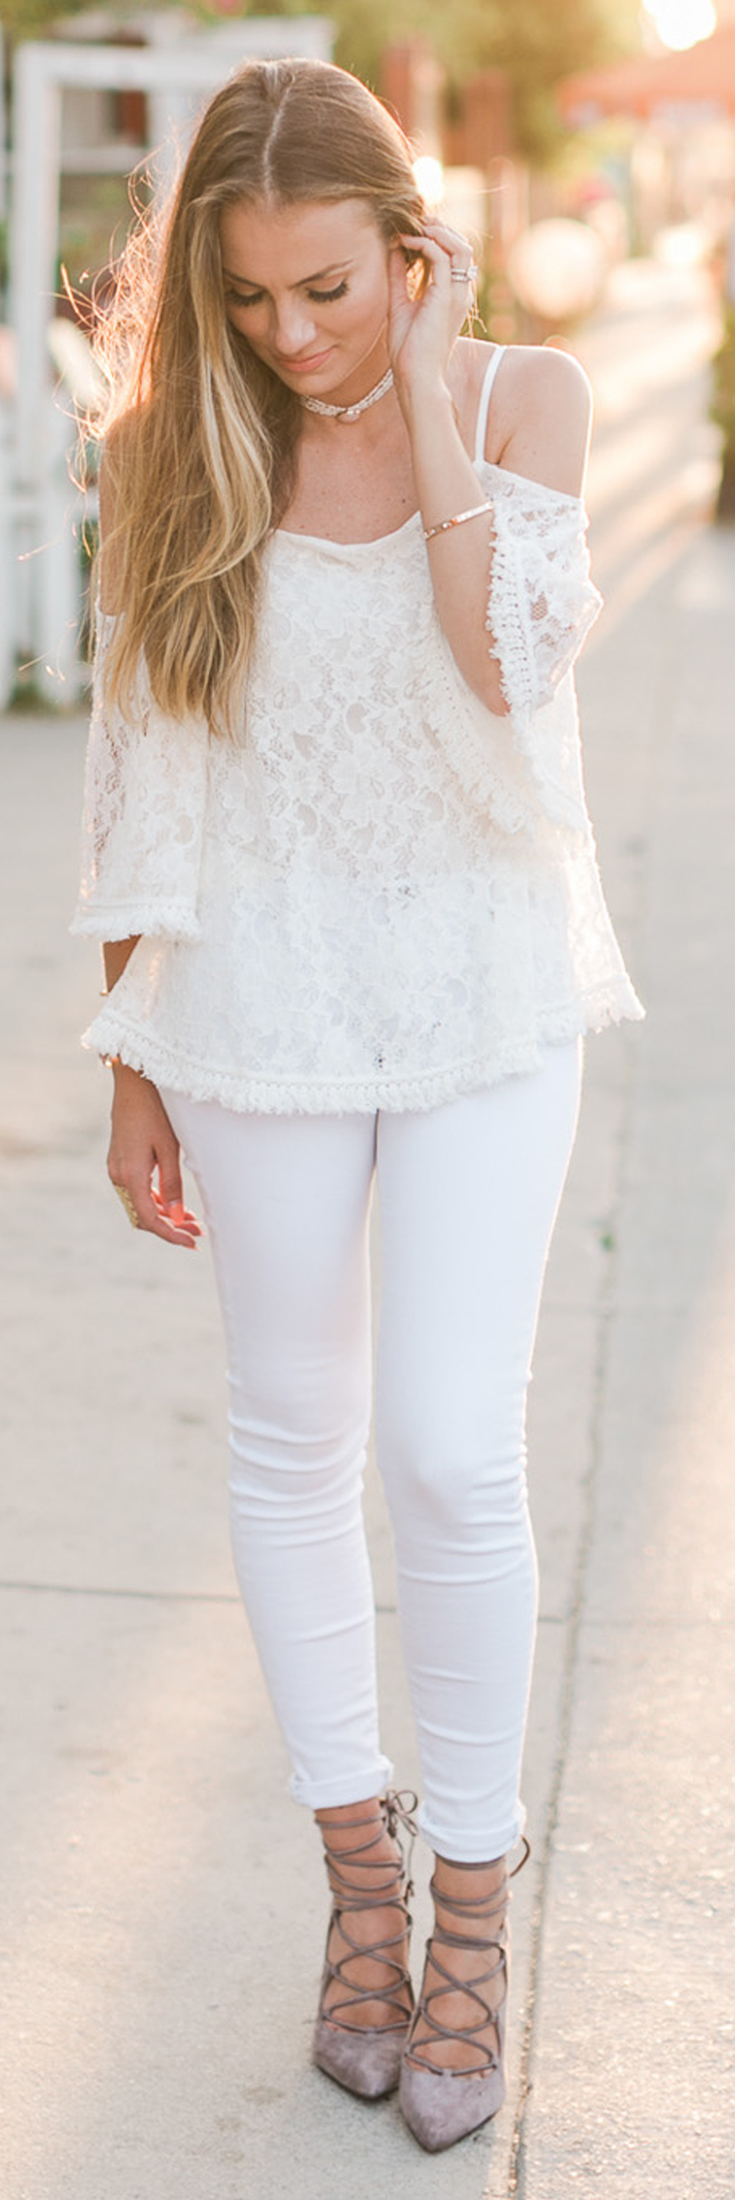 Angela Lanter - Hello Gorgeous Outfit: Cold Shoulder Top, Skinny Jeans, Heels, Necklace, Ring and Bracelet.